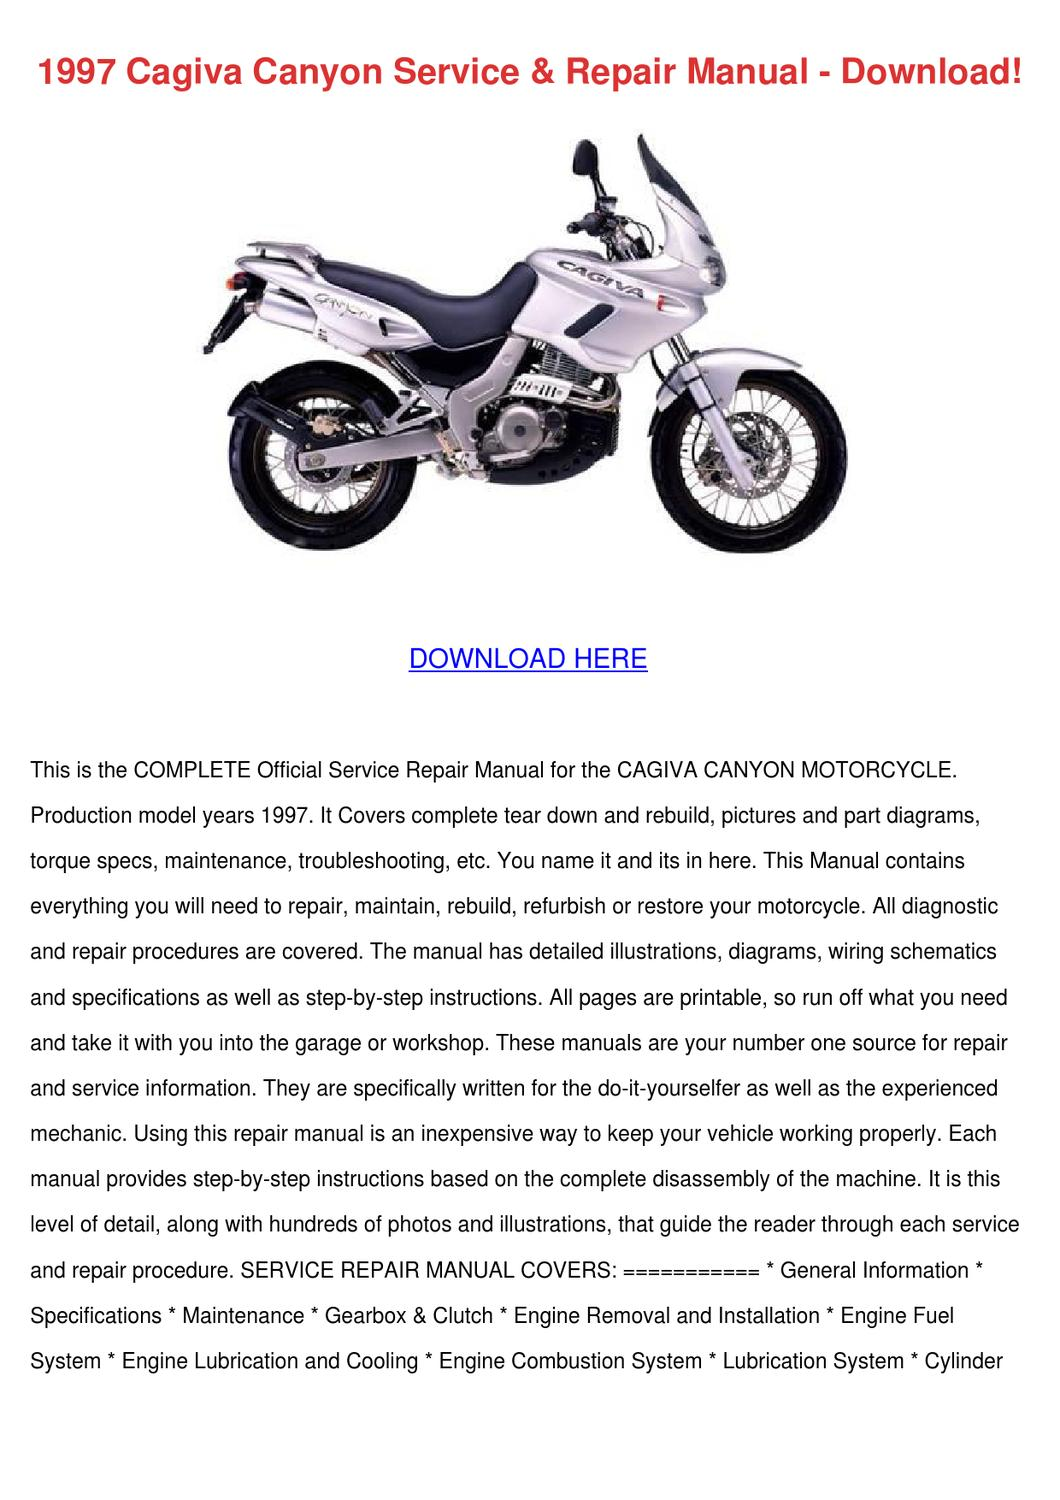 Remarkable 1997 Cagiva Canyon Service Repair Manual Down By Eloisacreech Issuu Wiring 101 Archstreekradiomeanderfmnl